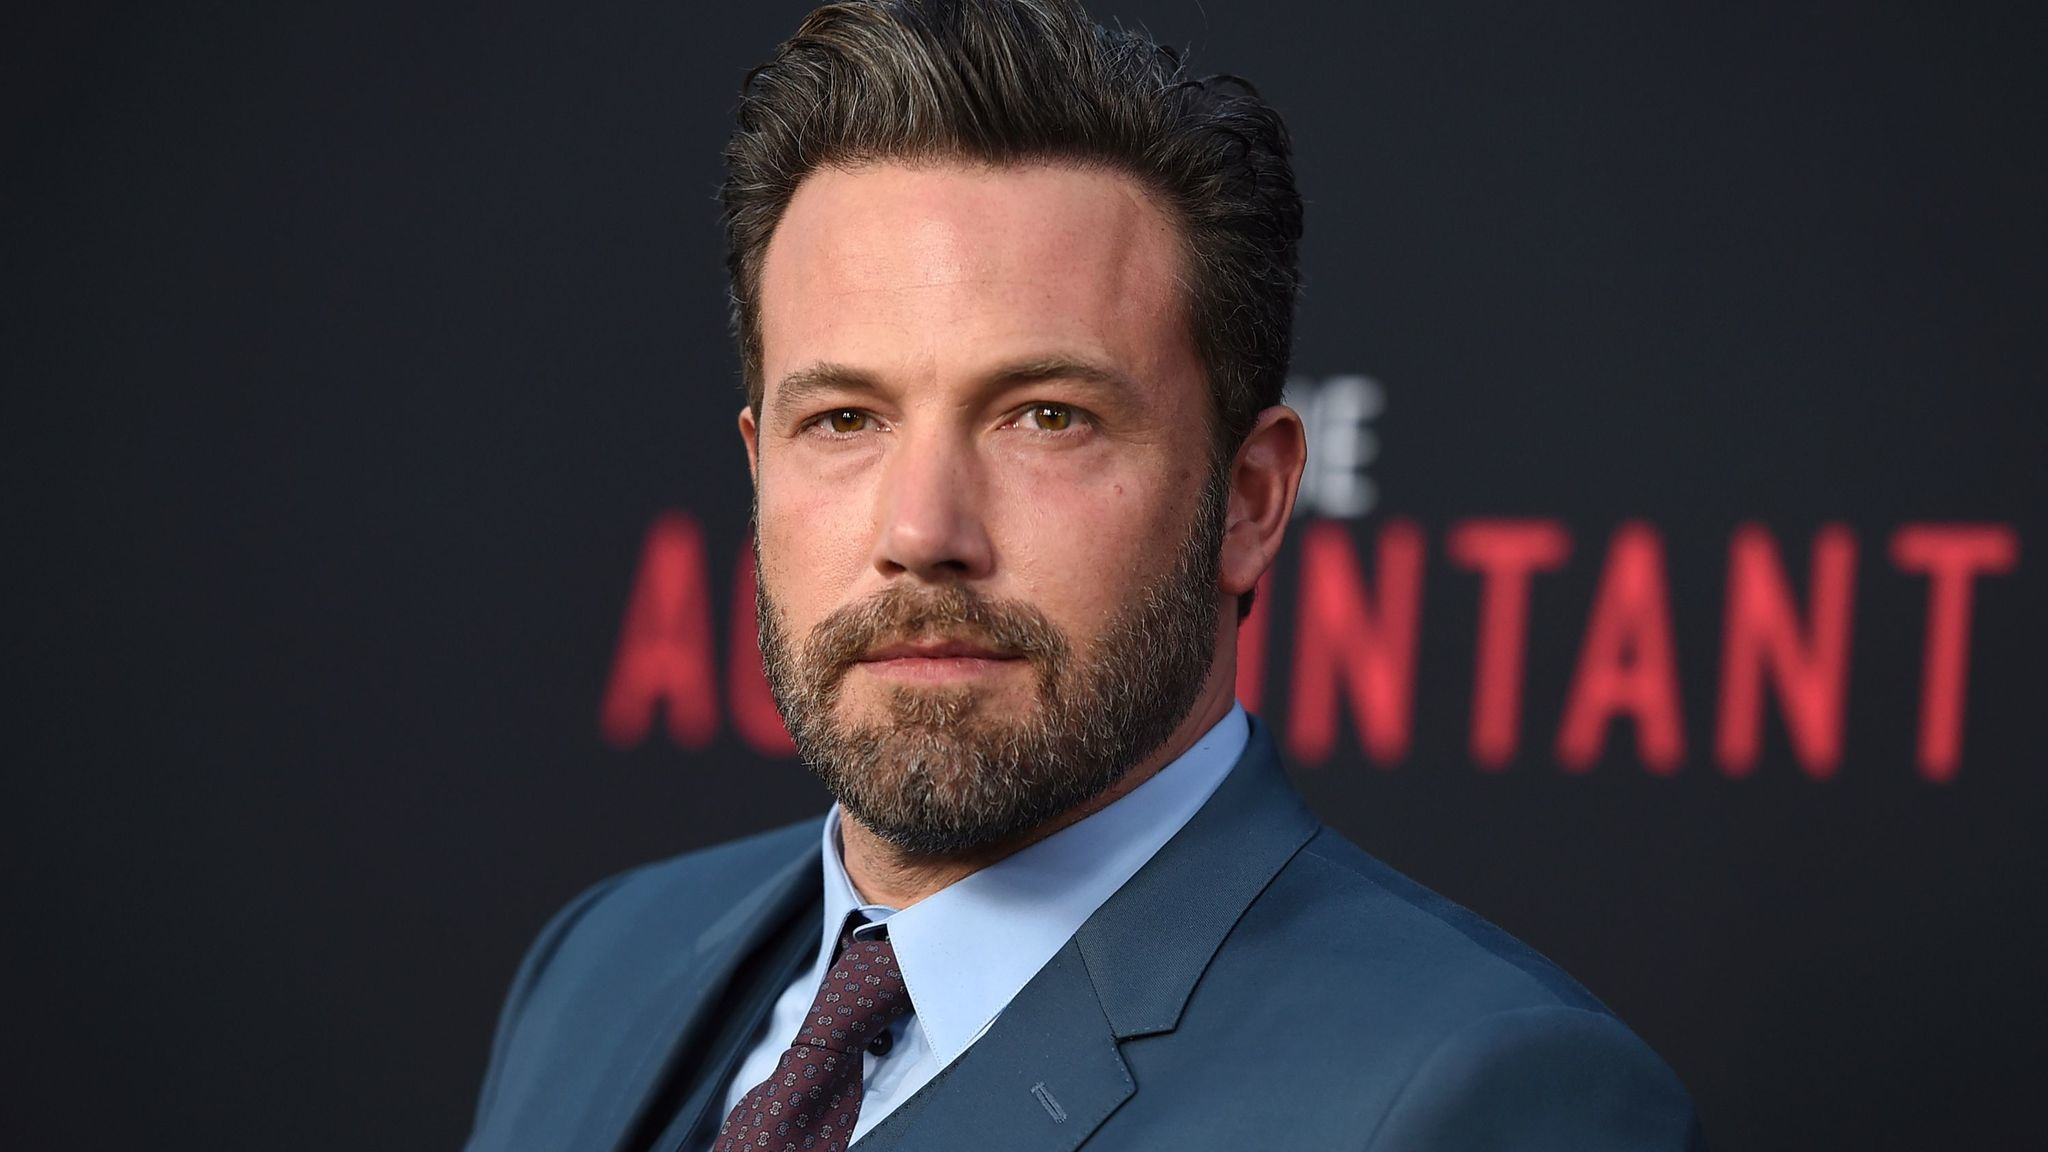 Ben Affleck apologizes for groping Hilarie Burton in 2003 https://t.co/a9BhVqMkug https://t.co/GMo1phlHBM